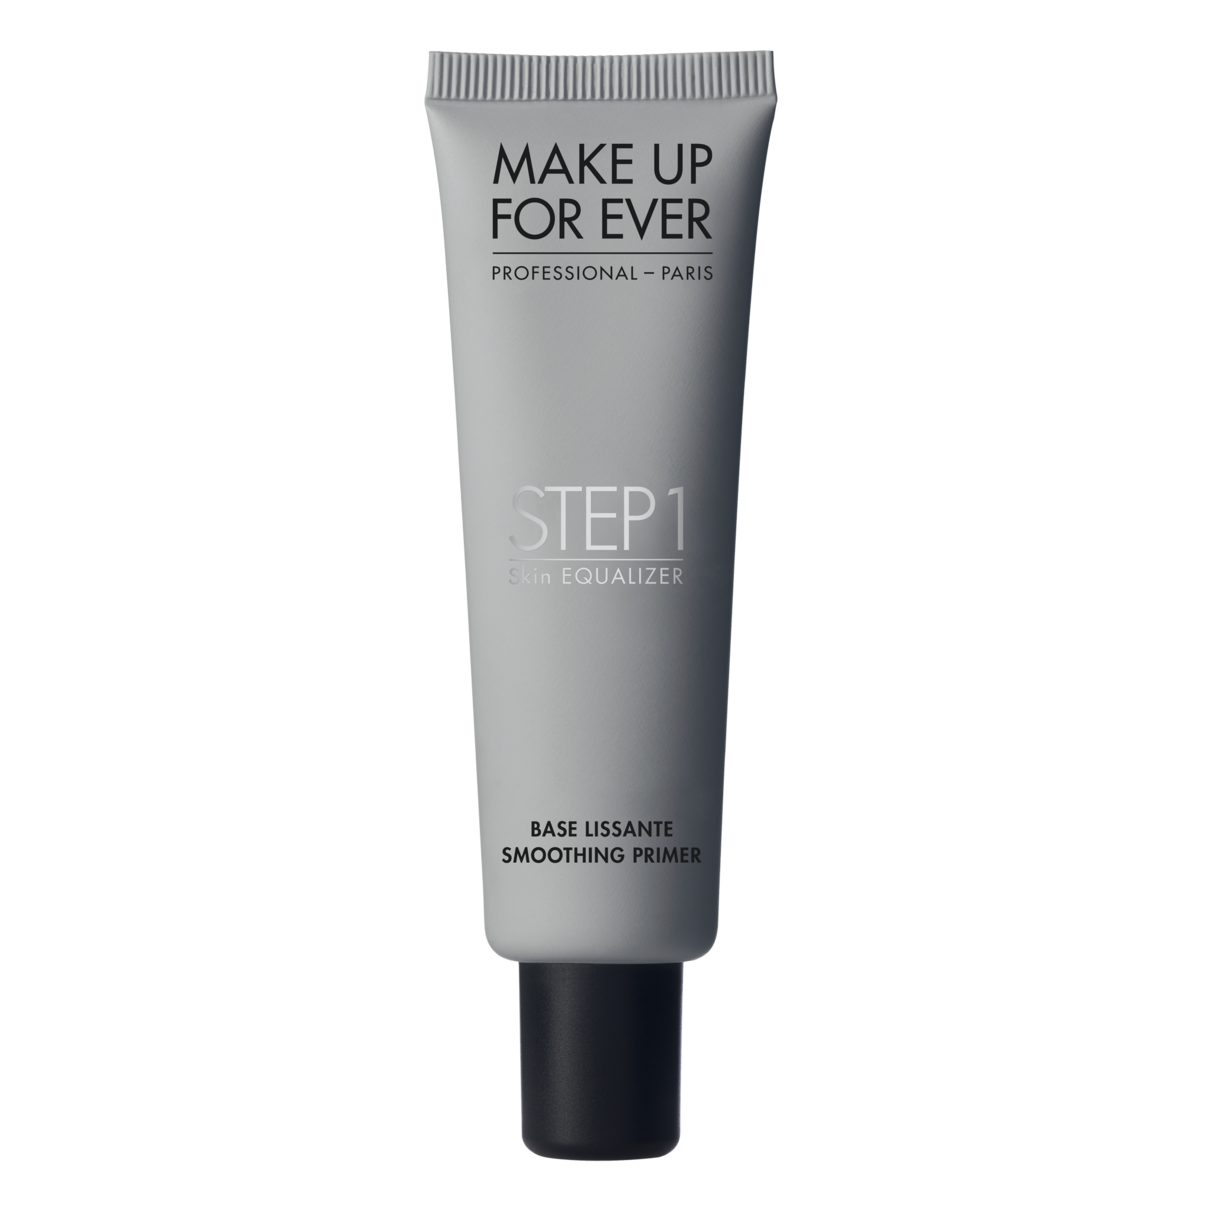 Step 1 Primer MAKE UP FOR EVER beauty and body